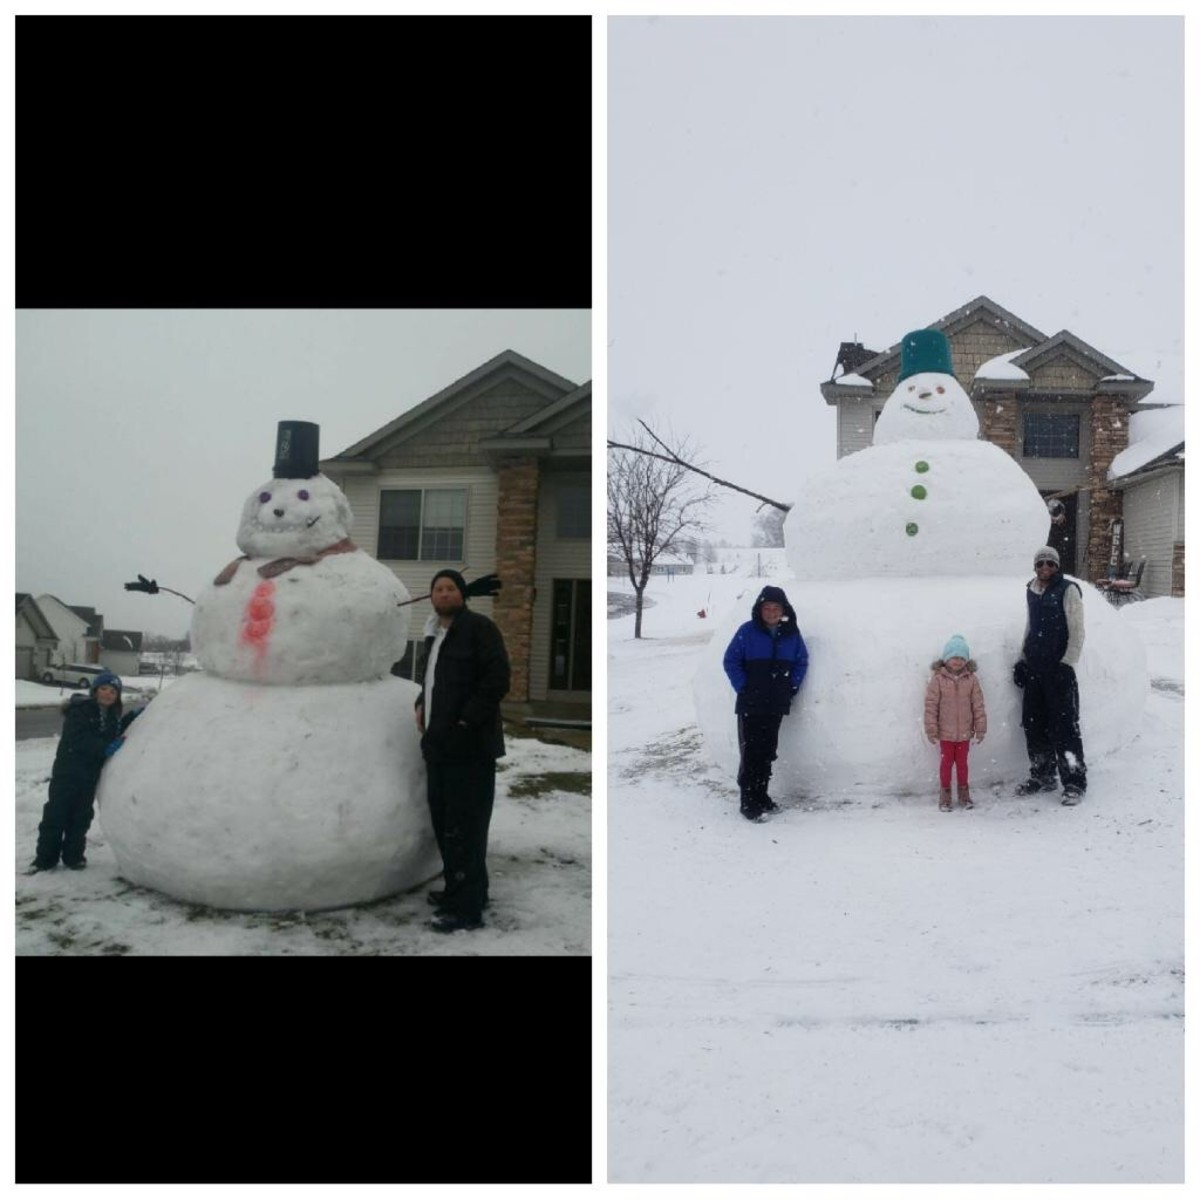 Eric Fobbe doubled the size of another big snowman he built.